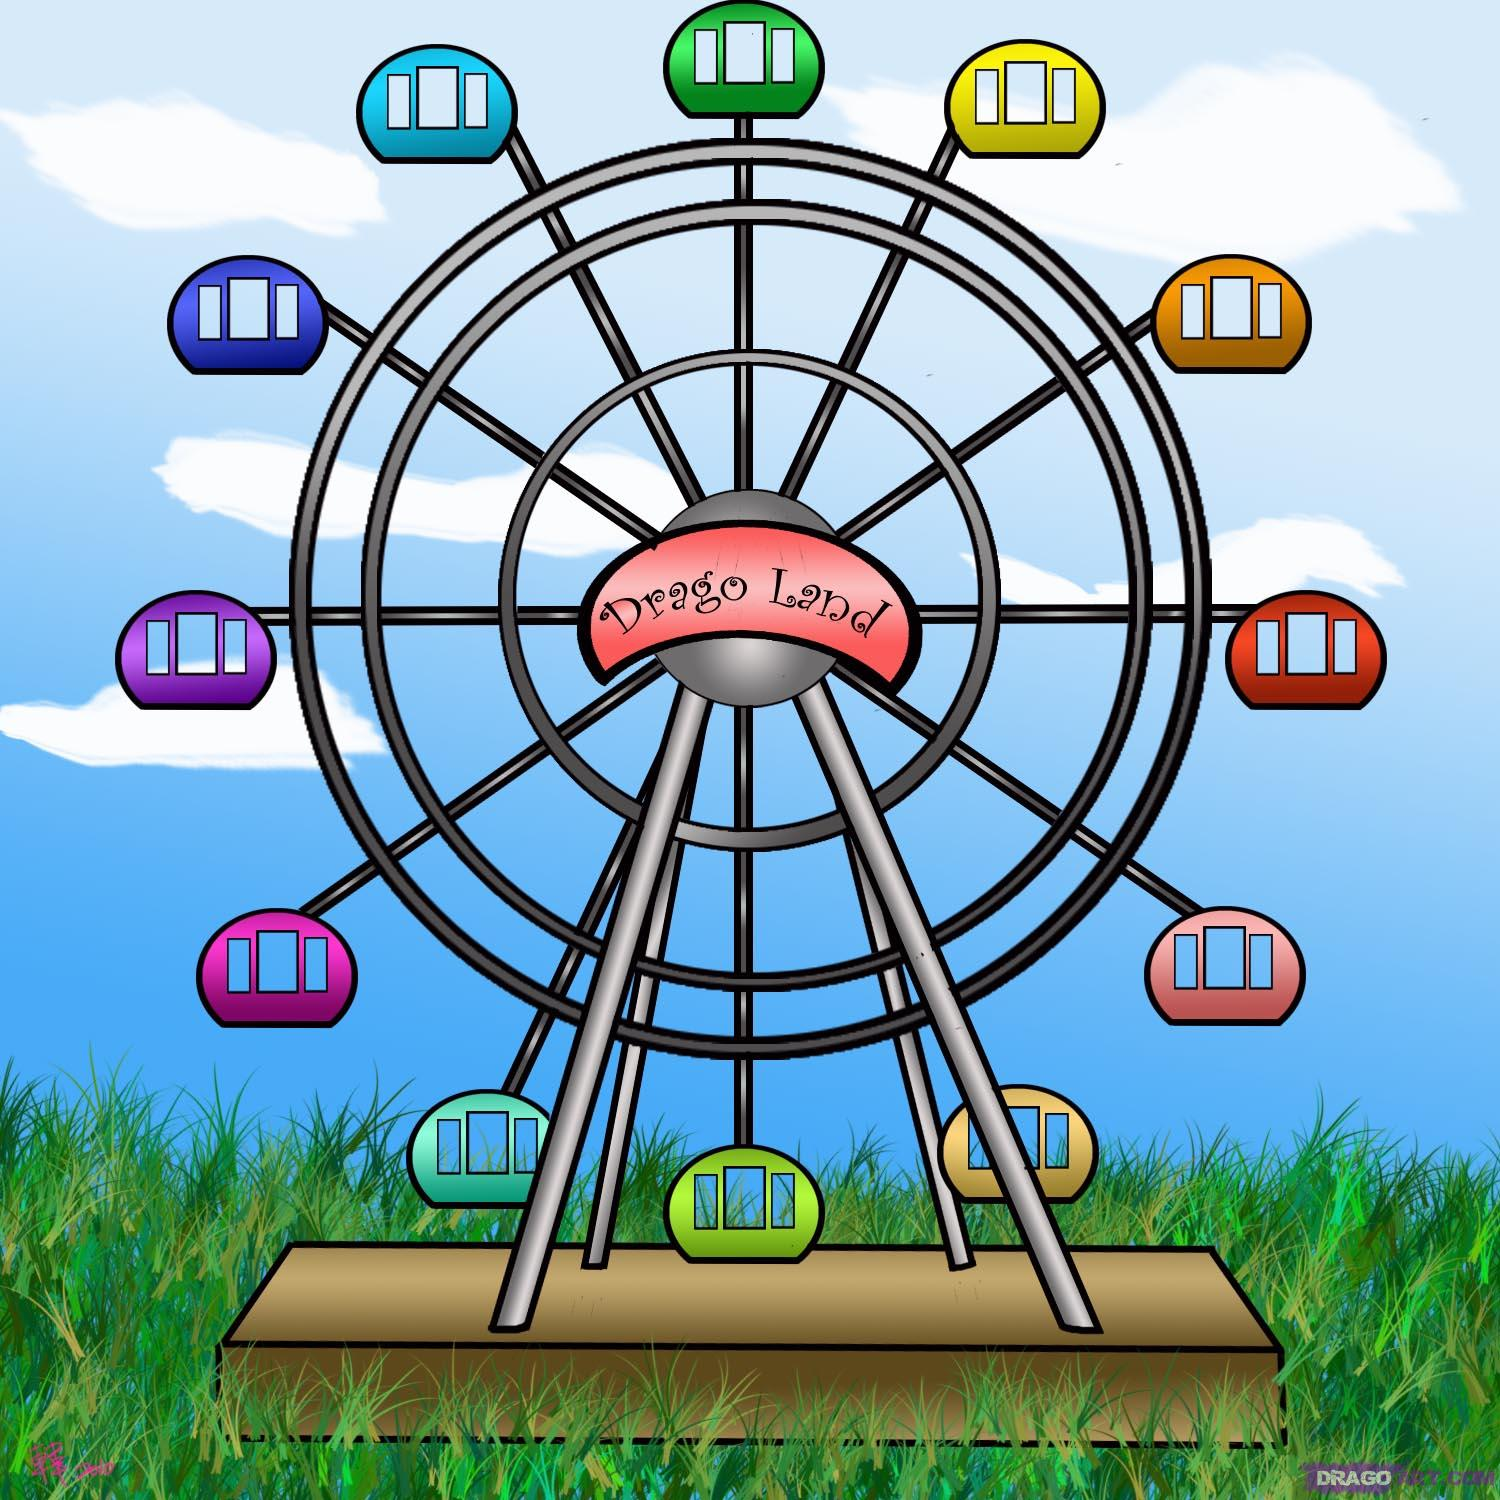 Drawn ferris wheel How Culture how to Wheel